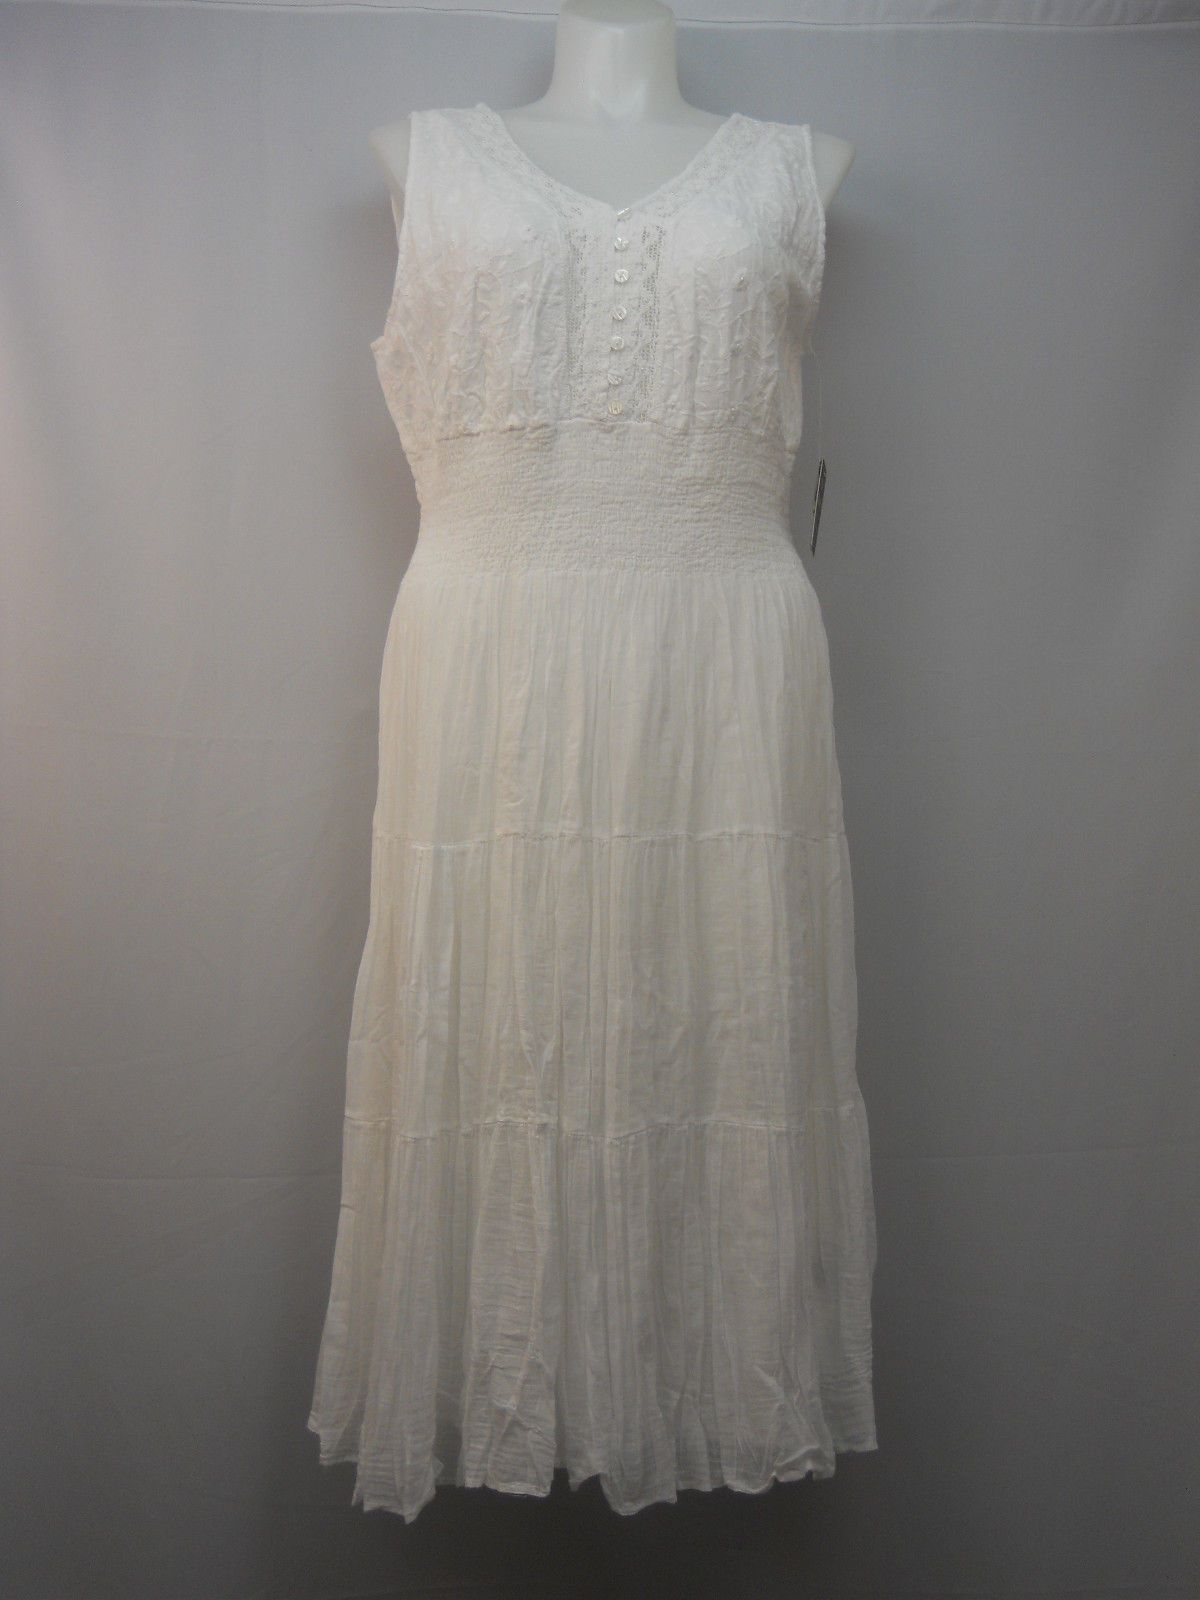 7e2ef8ec83f Mlle Gabrielle Women s Gypsy Bohemian Dress Plus Size 2X V-Neck White  Sleeveless For Sale - Item  1626811